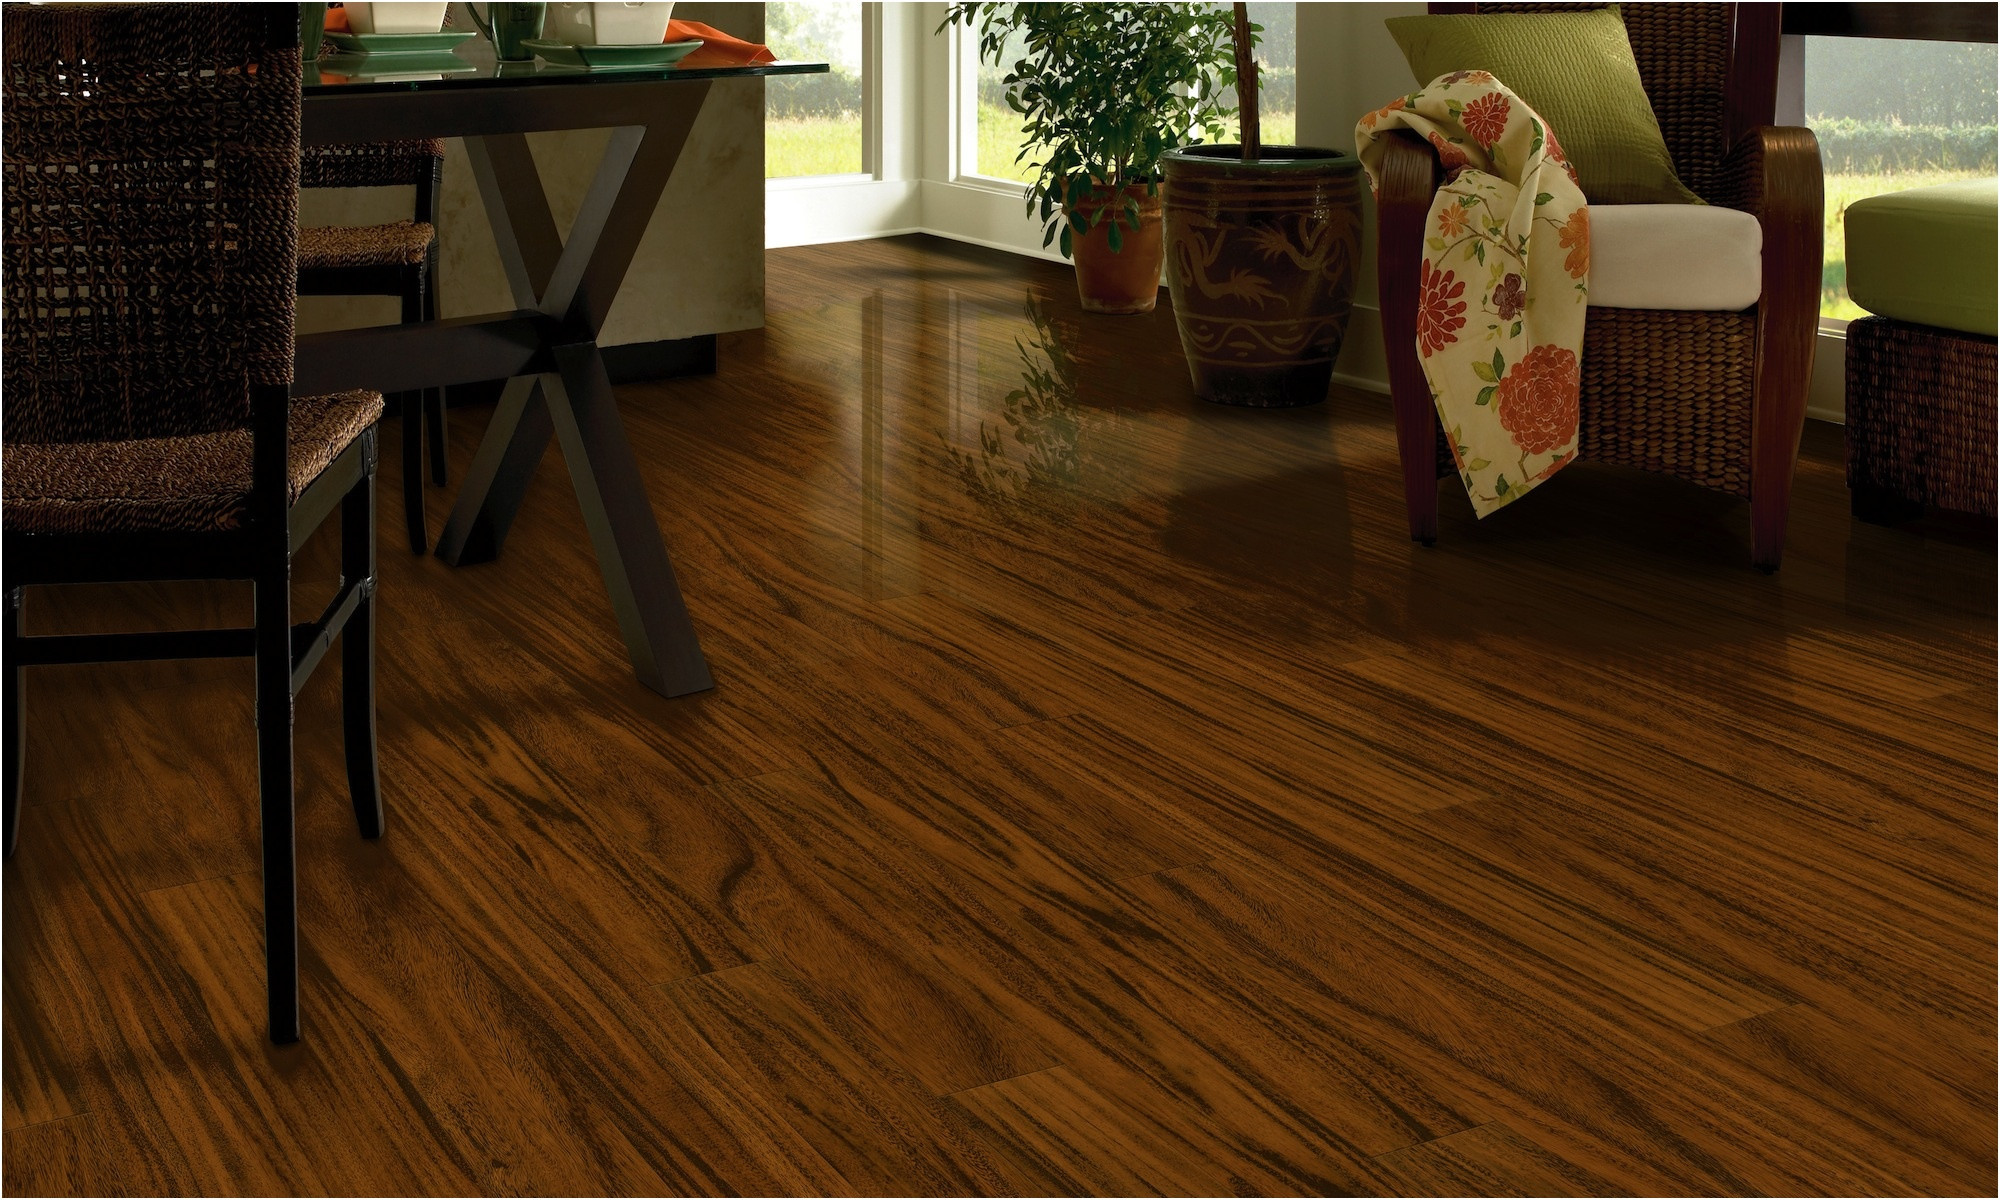 how to clean hand scraped hardwood floors of best hand scraped hardwood flooring reviews collection engineered intended for best hand scraped hardwood flooring reviews galerie floor striking bruce hardwood floors s ideas plano marsh